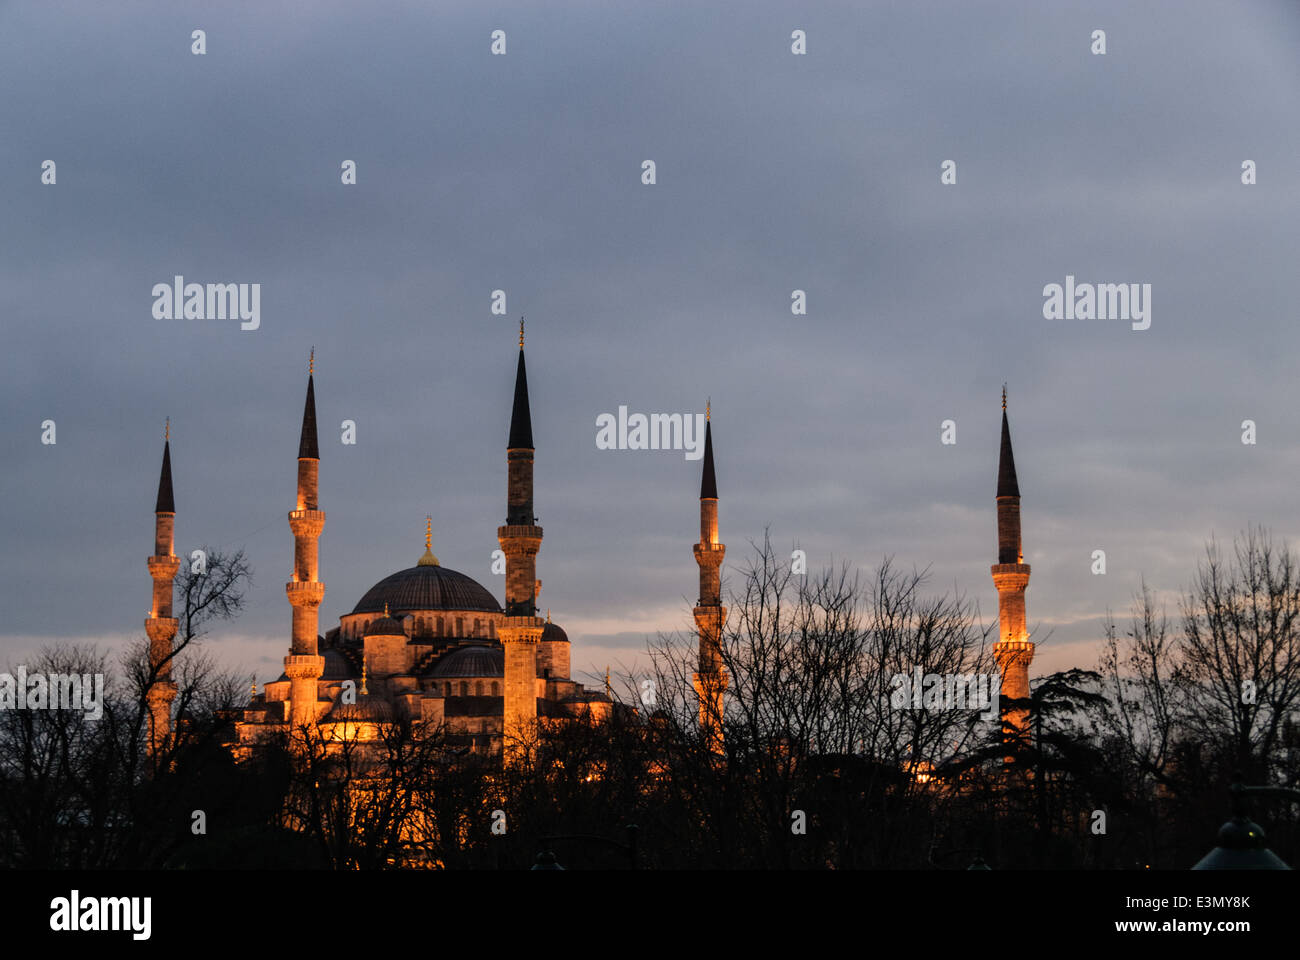 Blue mosque at dusk, Istambul, Turkey, Asia - Stock Image